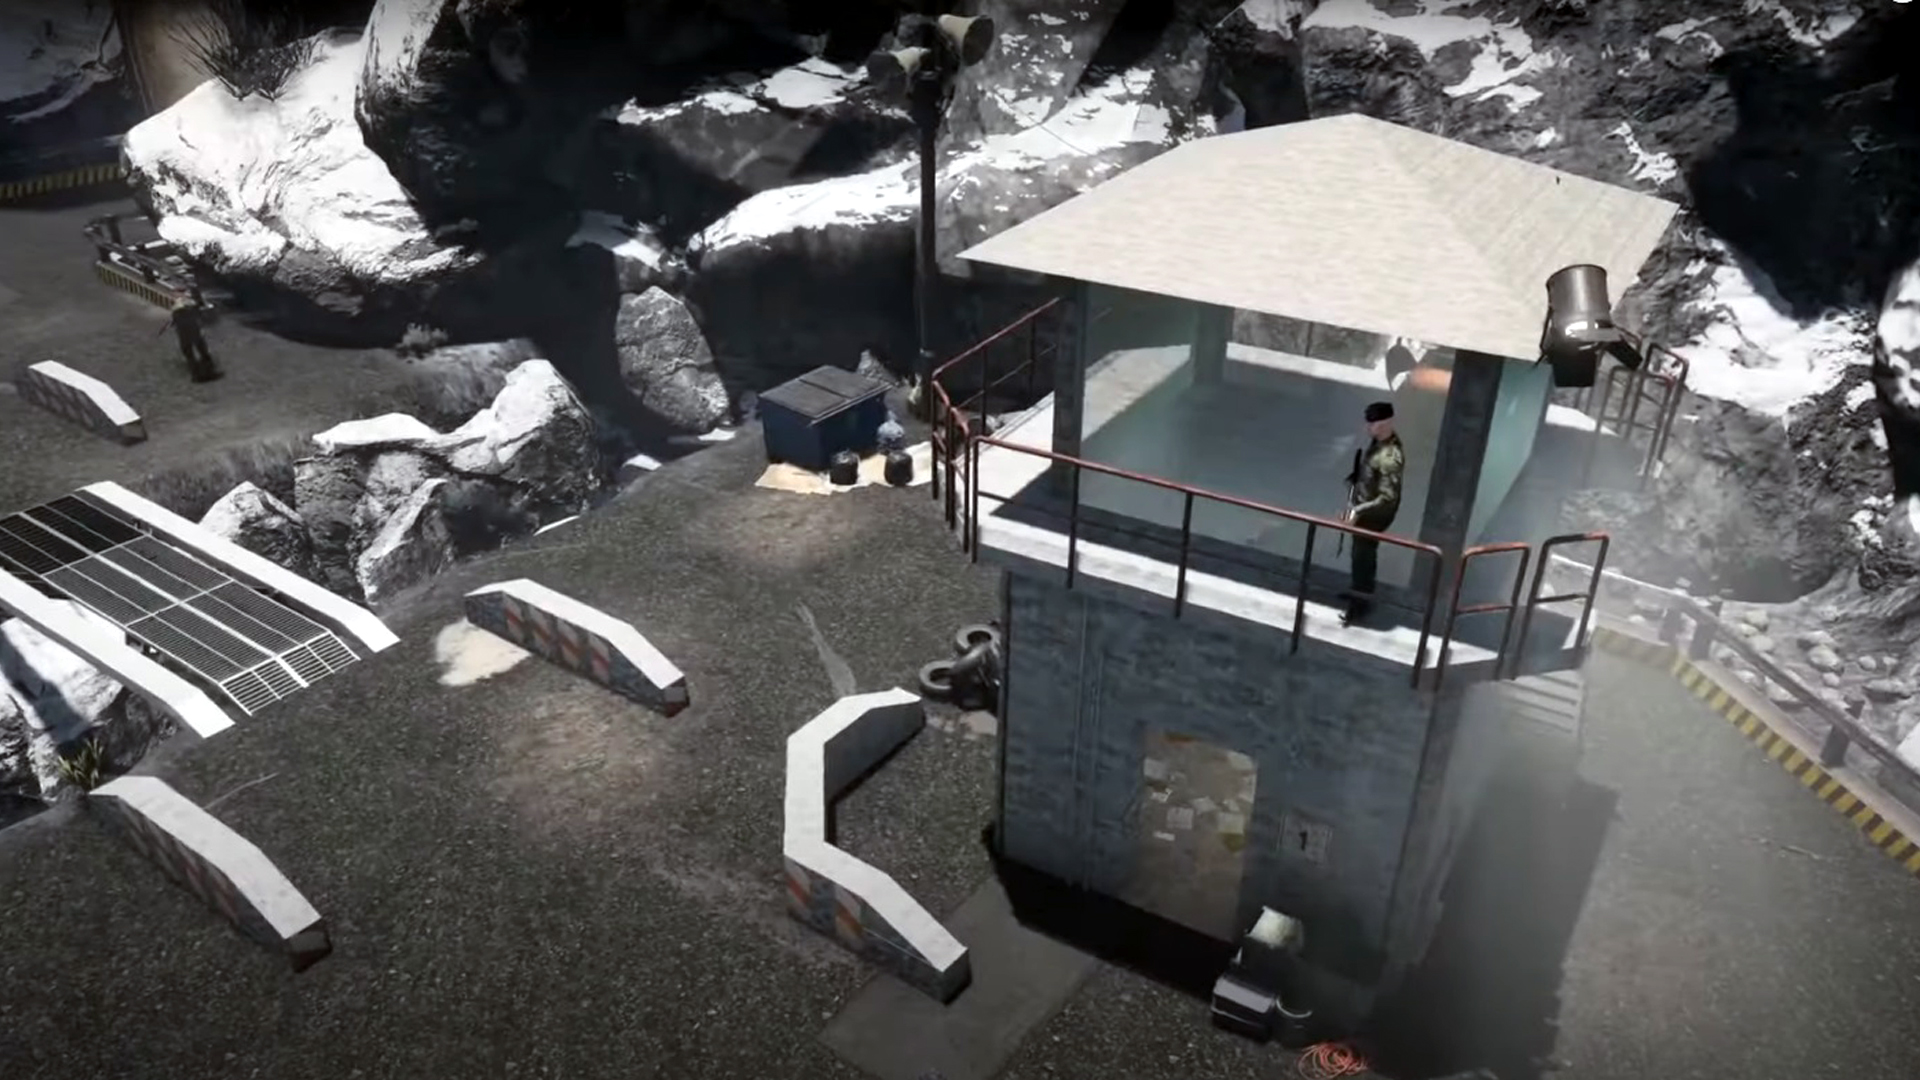 It took three years to remake GoldenEye in Far Cry 5 only for Ubisoft to pull it